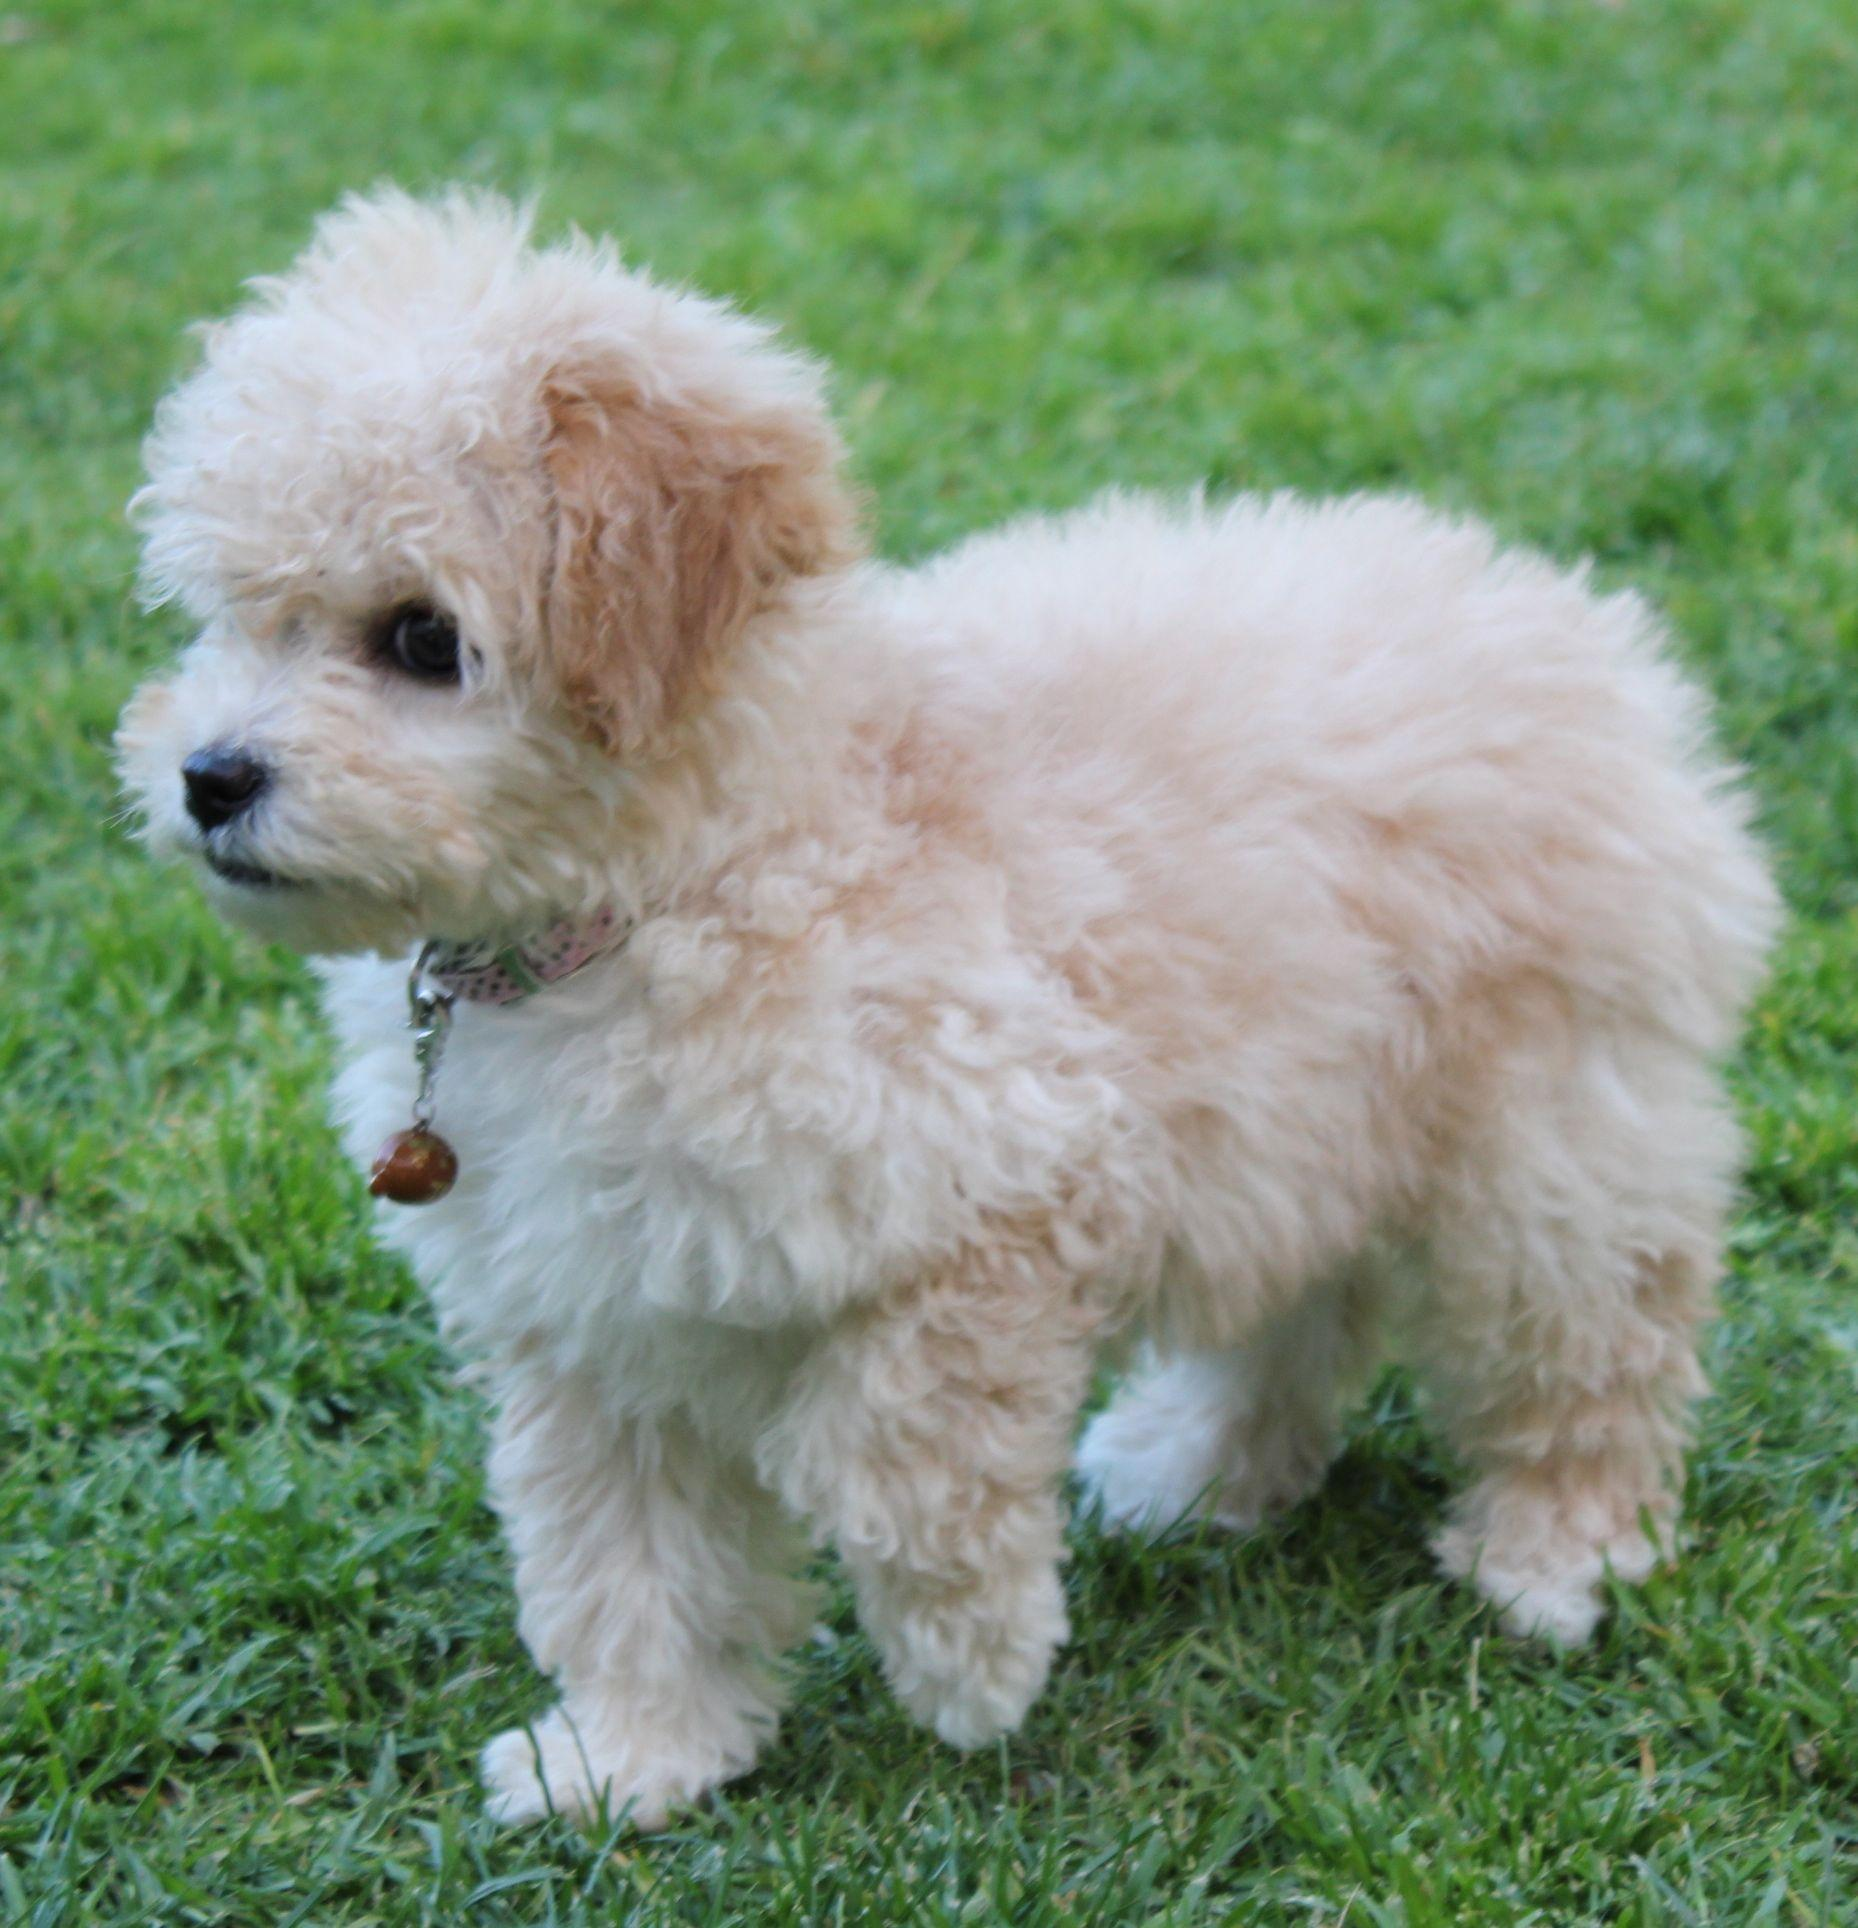 Toy Maltipoo | img_7448.jpg | Dogs | Pinterest | Toy maltipoo ...